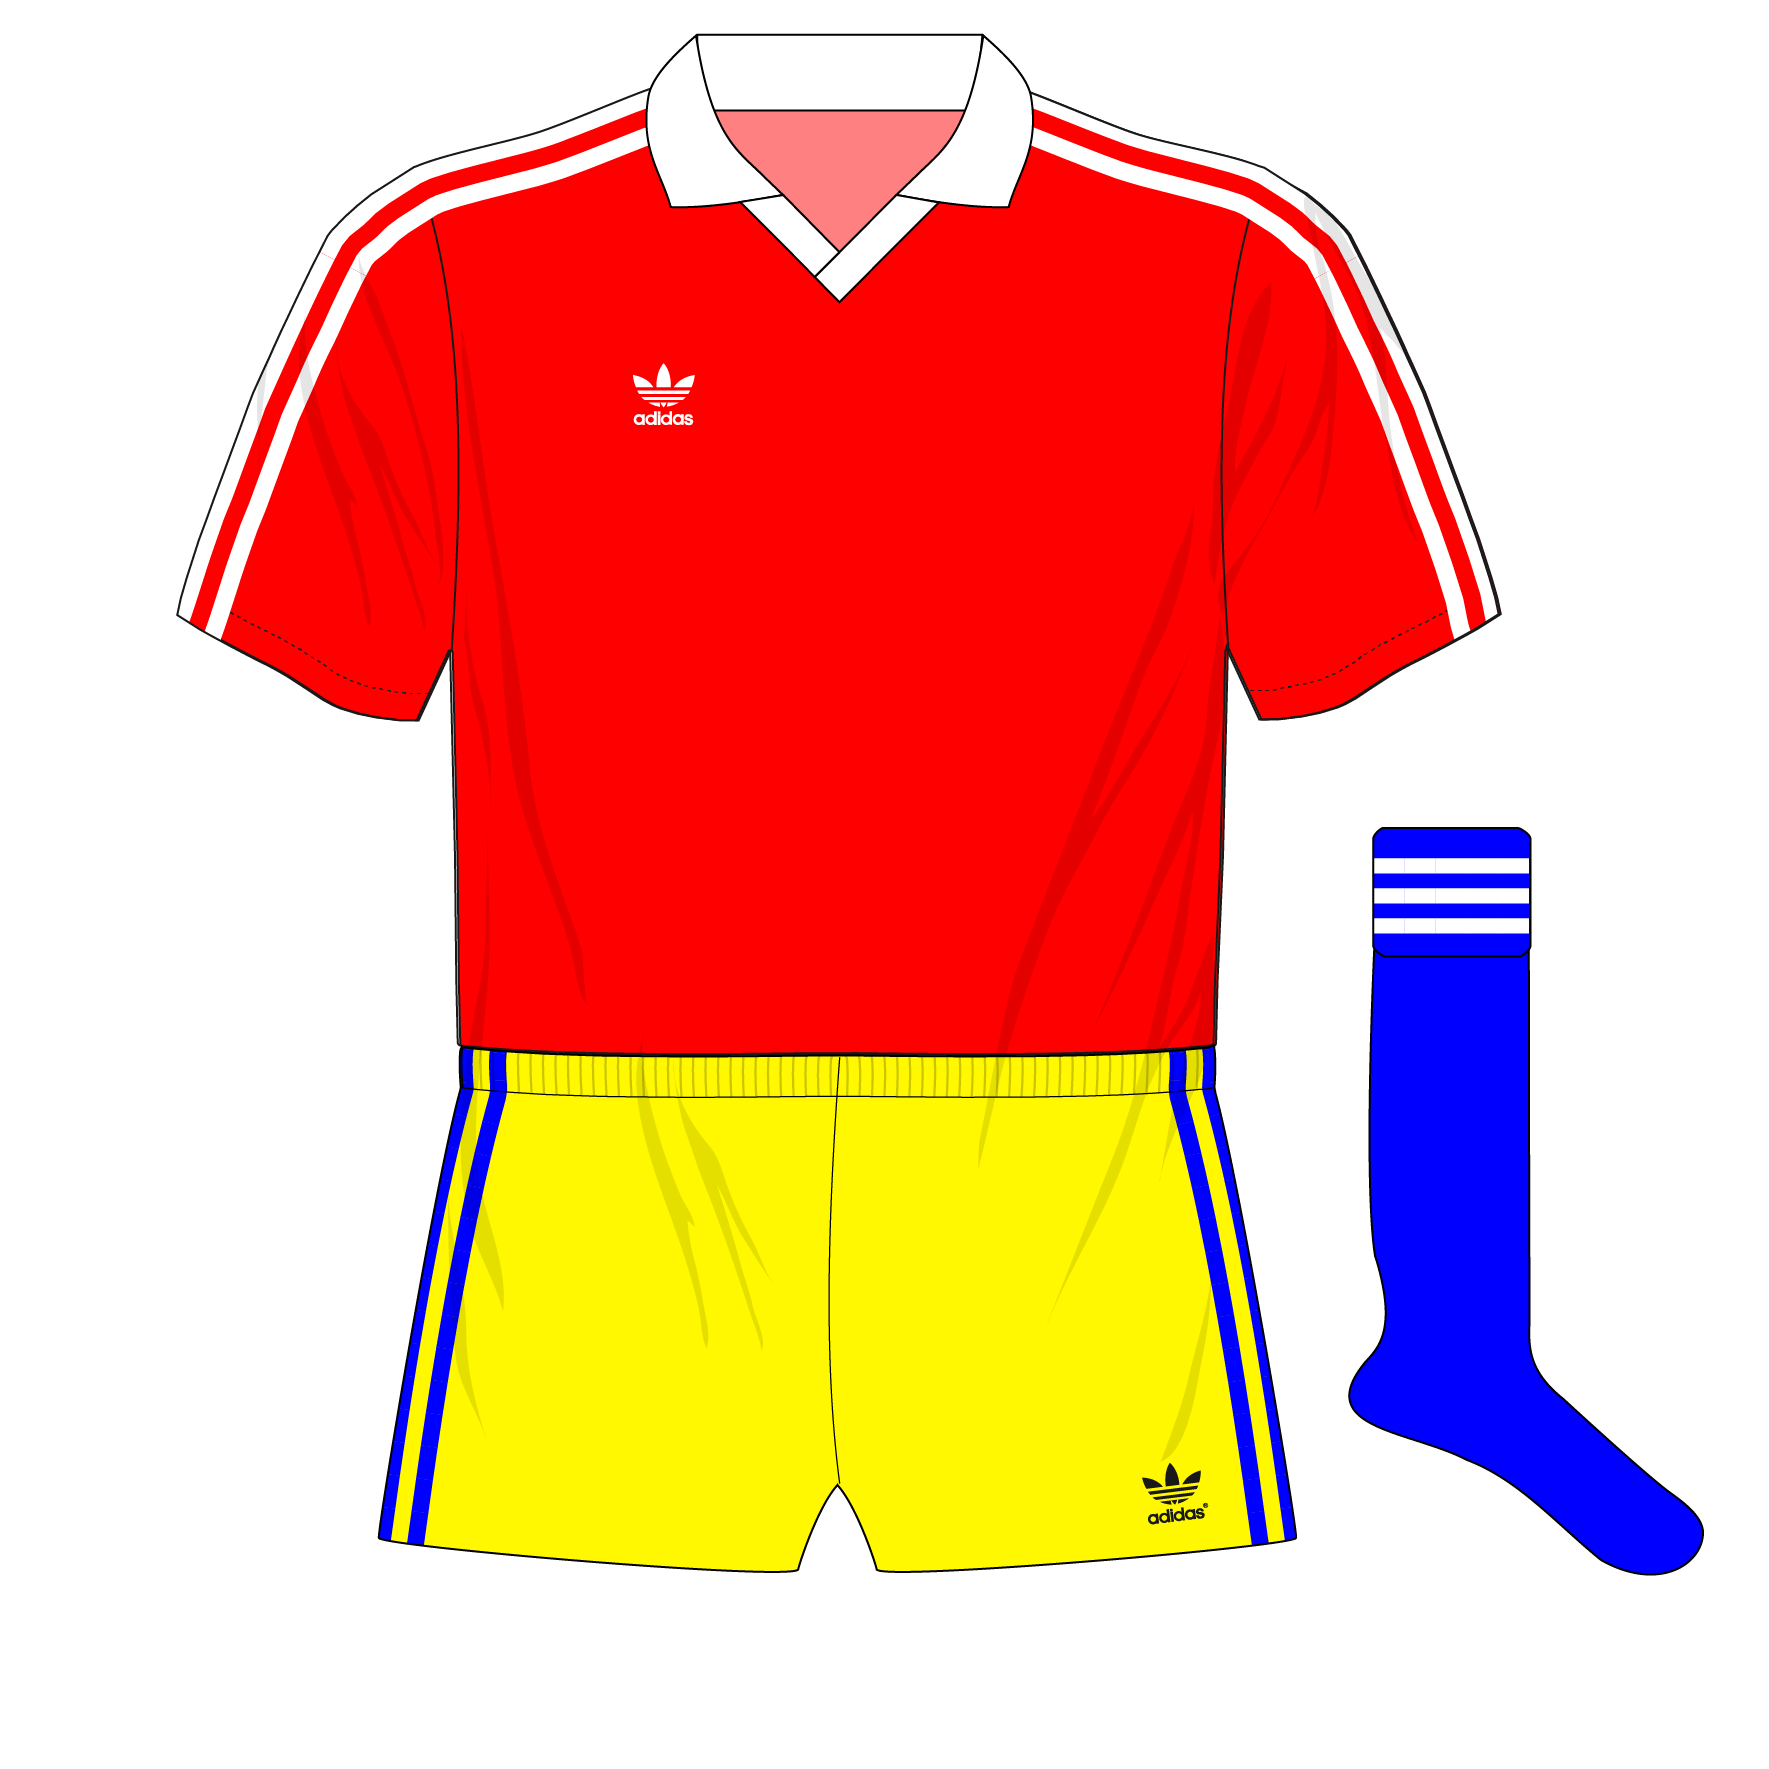 4da86e37f The history of Romania s kits from 1984 to 1997 – Museum of Jerseys